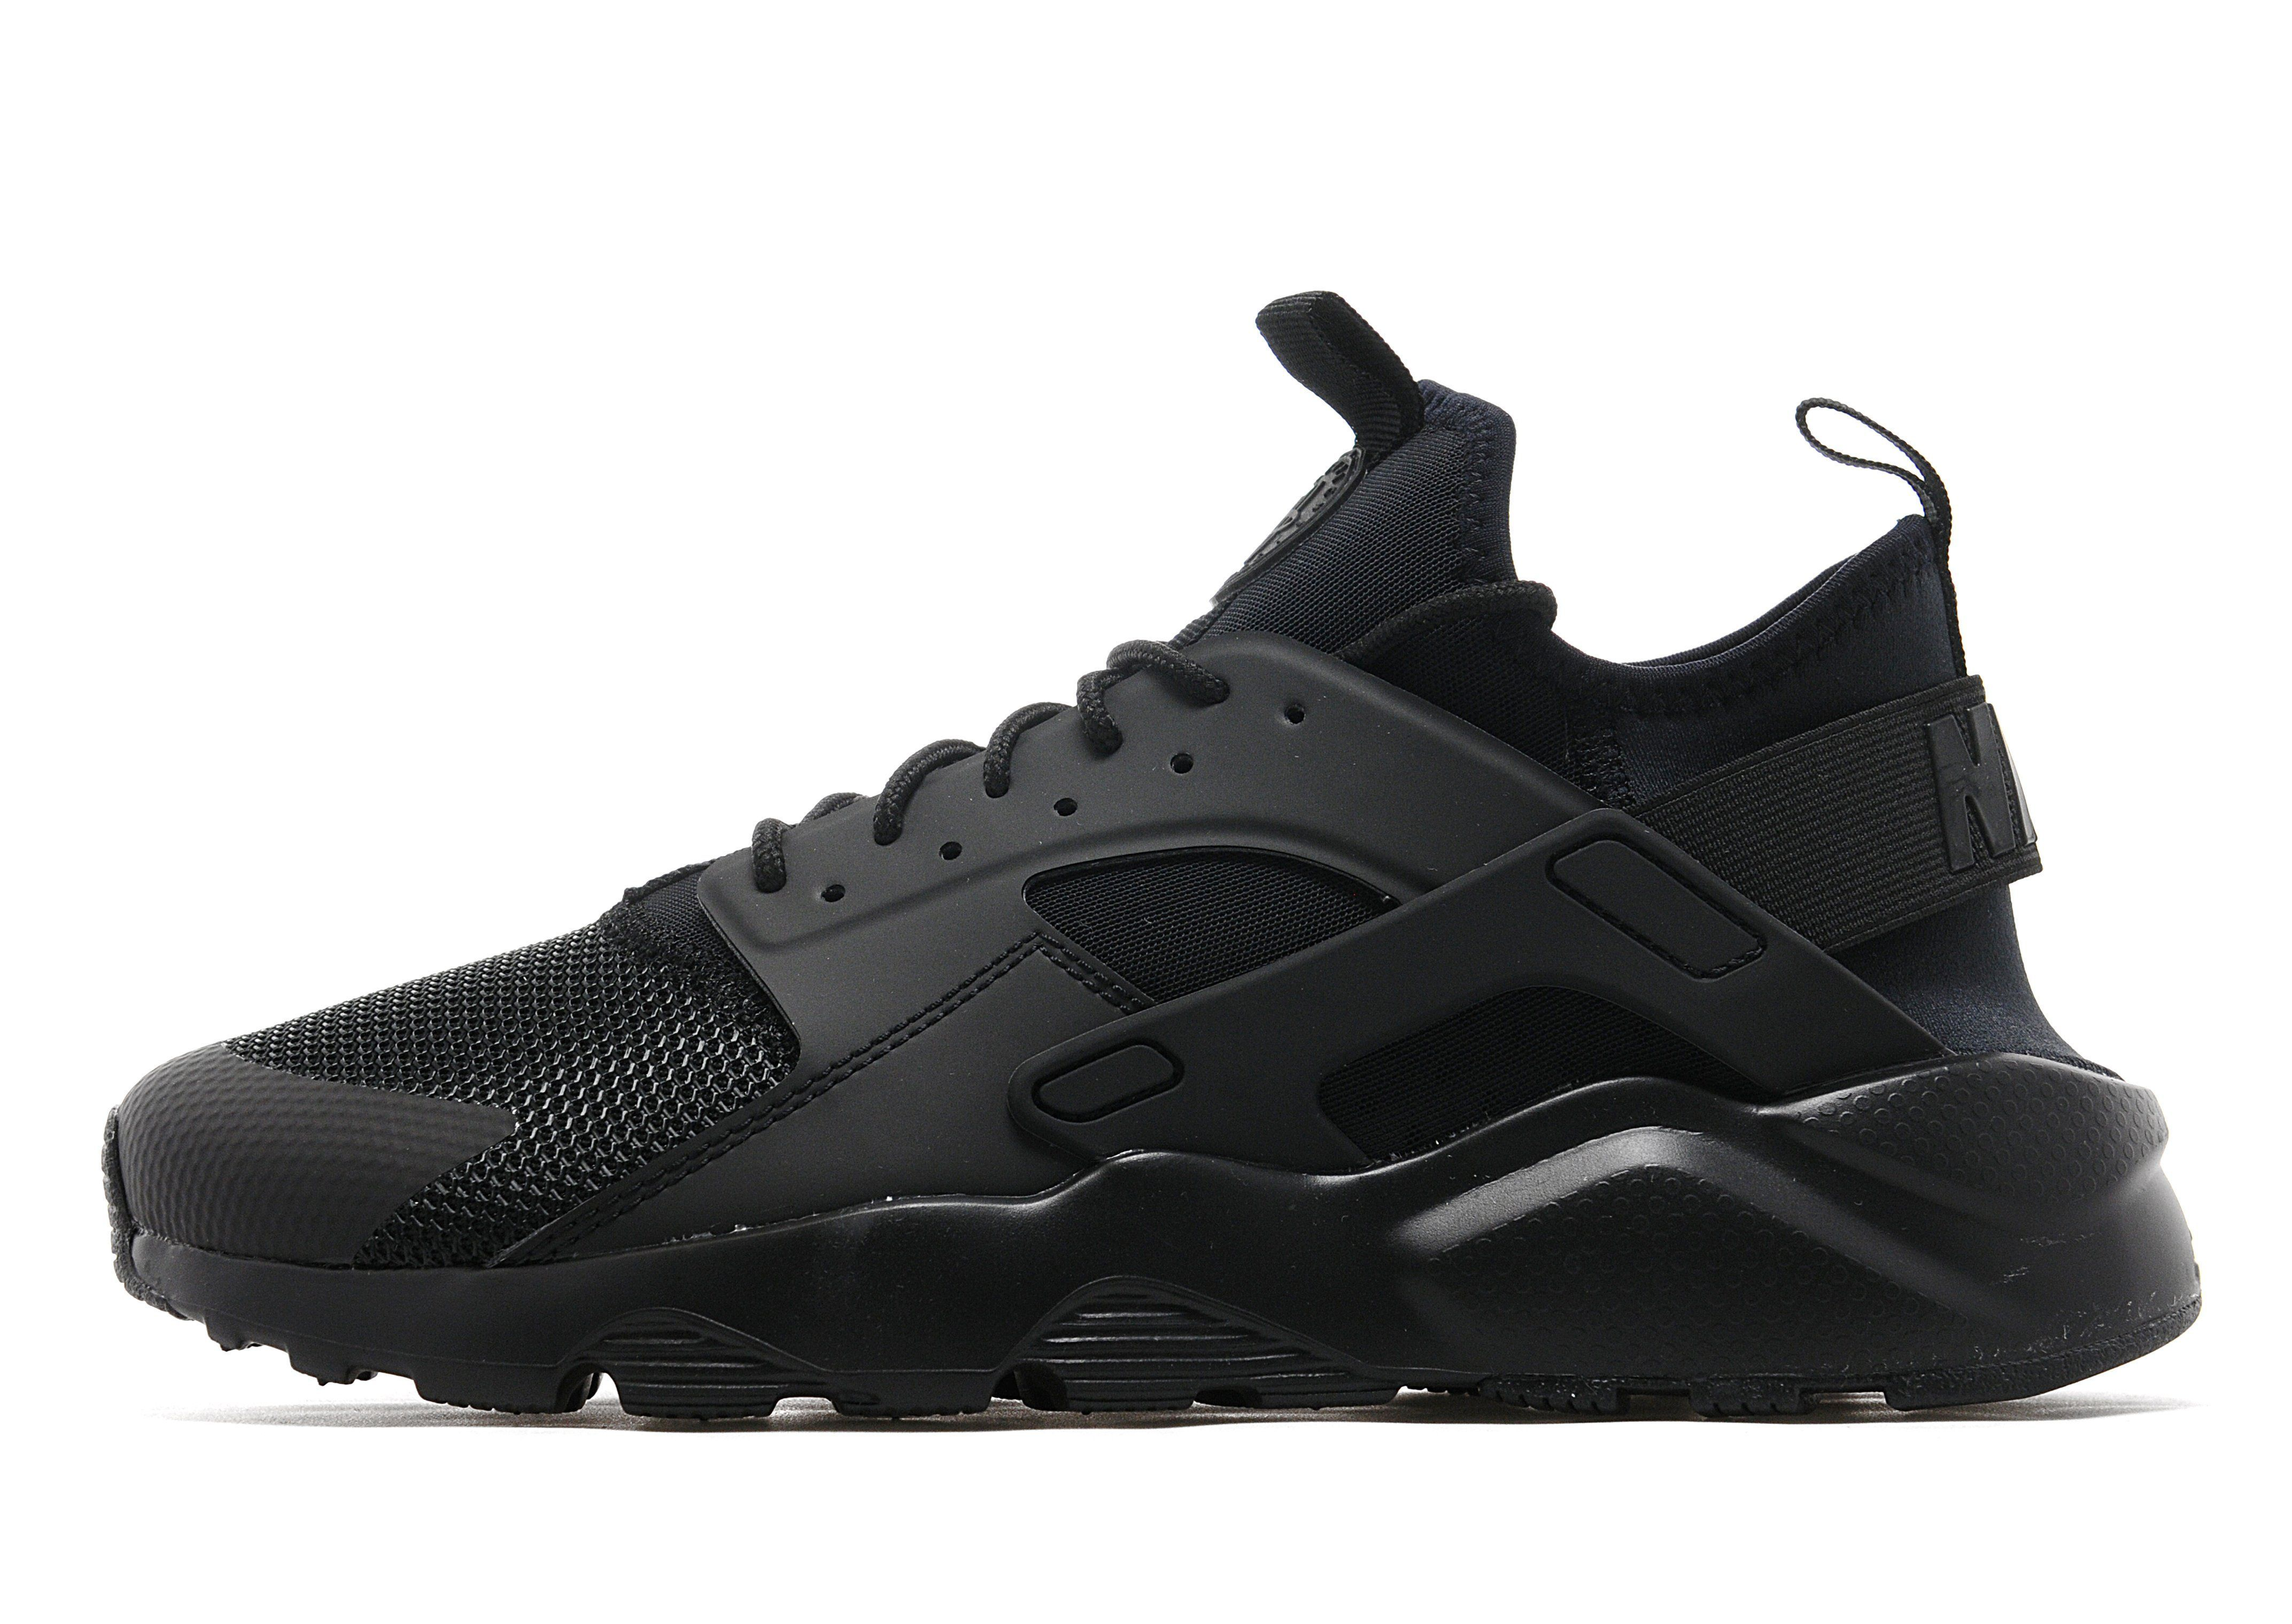 Nike Air Huaraches Ultra - Black   SNEAKERS   Chaussure, Chaussures ... f1576be944ab